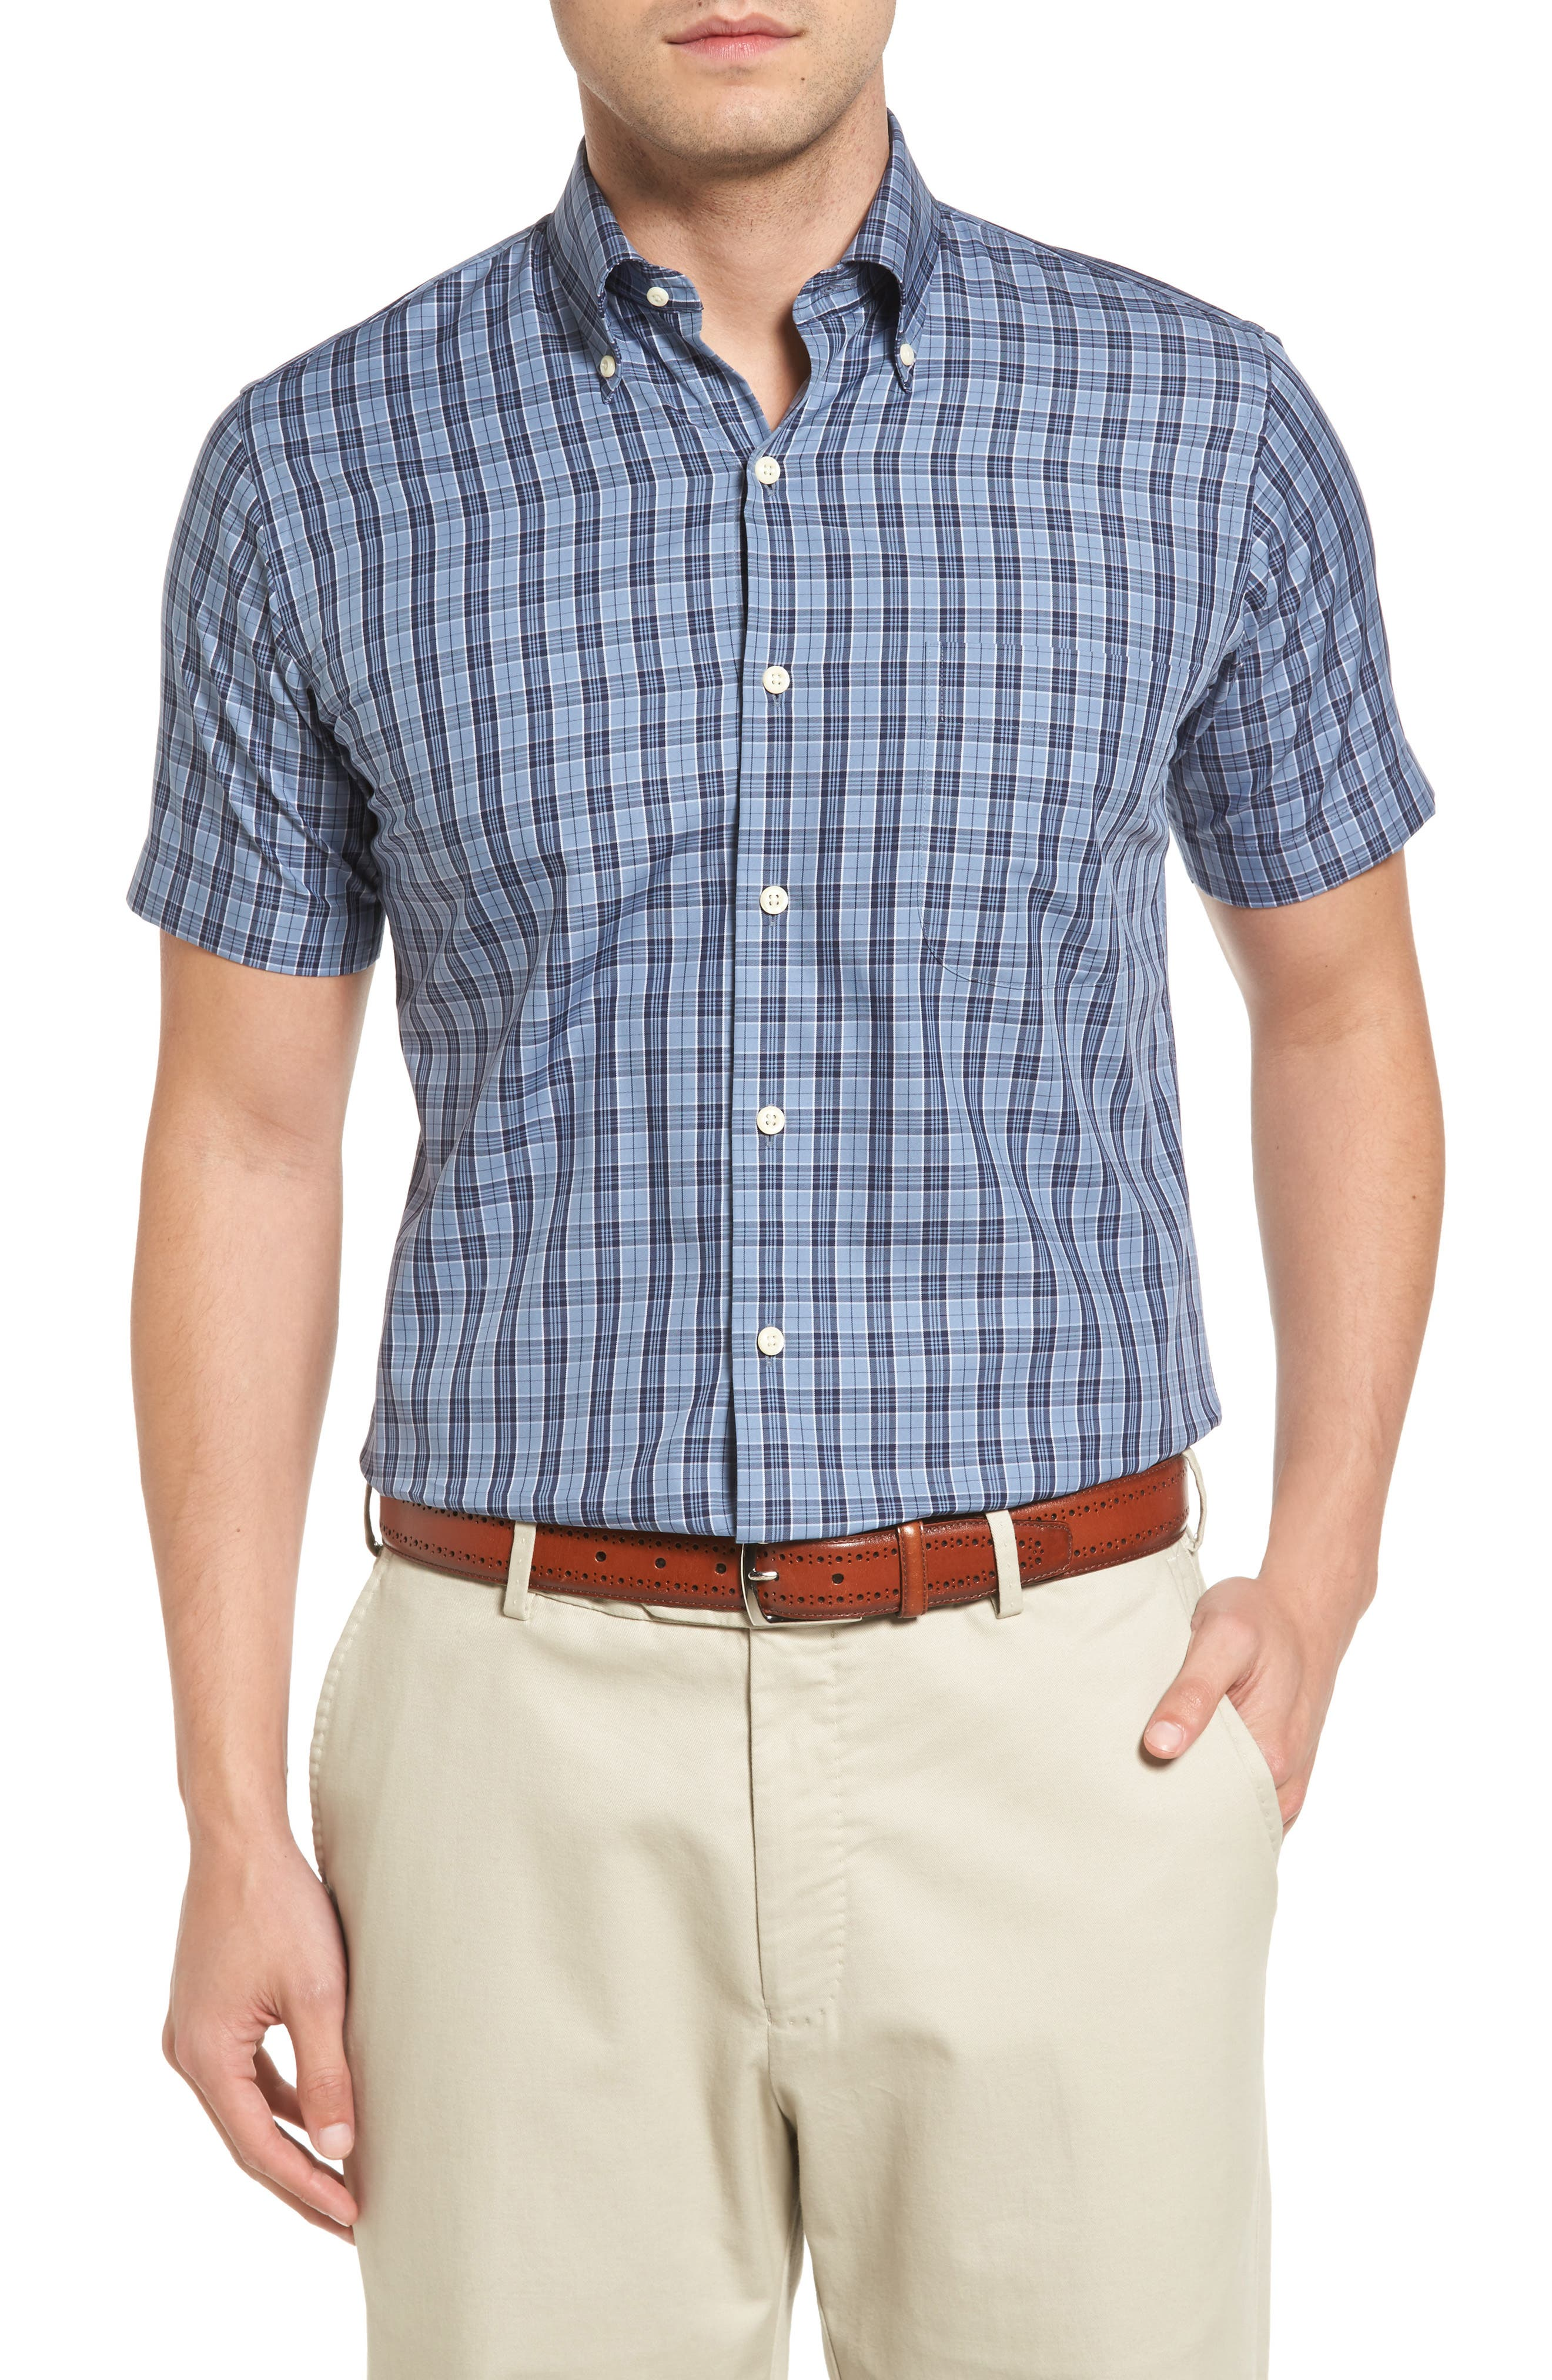 Main Image - Peter Millar Regular Fit Short Sleeve Stormy Plaid Sport Shirt